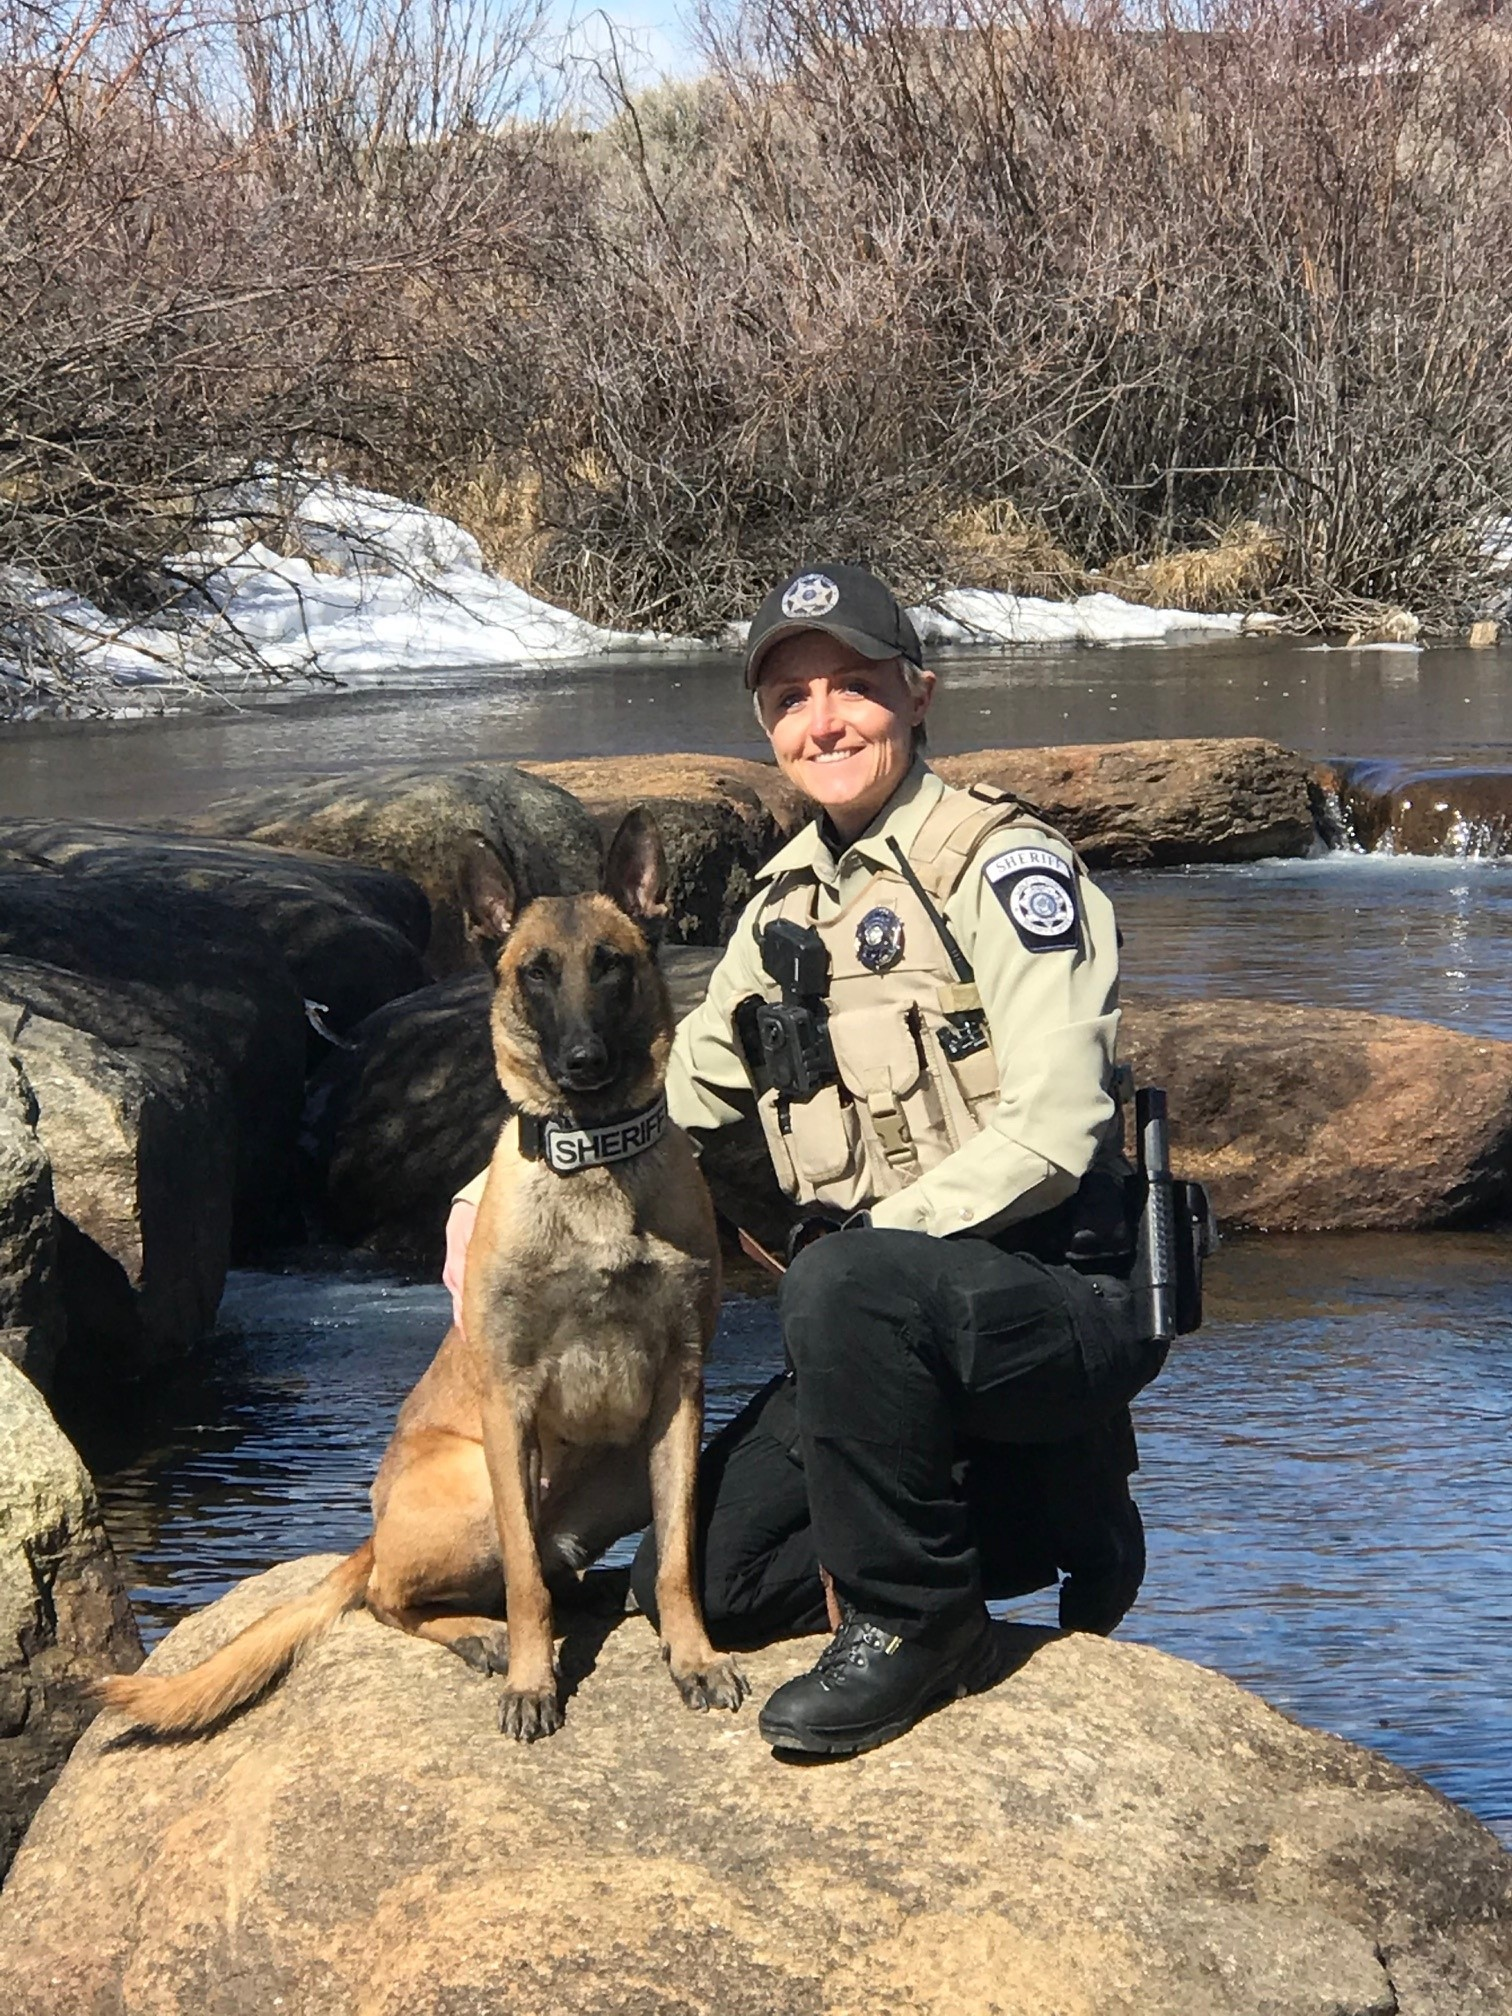 (Pinedale, Wyo – March 29th, 2021) The Sublette County Sheriff's Office introduces K9 Frankie to the agency, and receives donation of body armor.